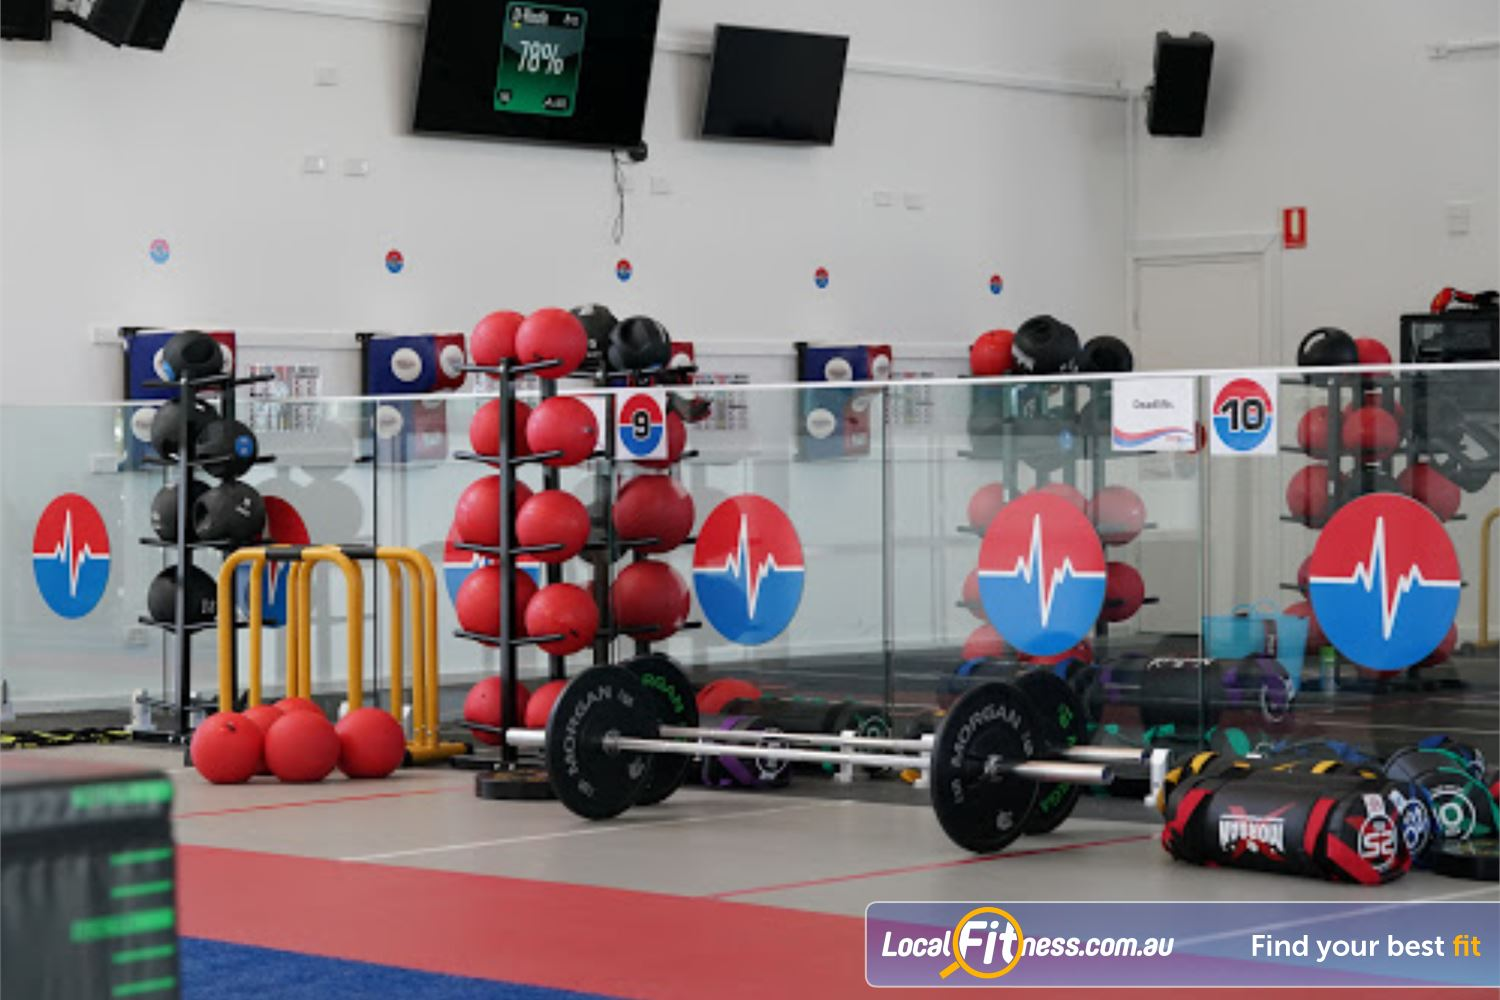 North Ryde Fitness & Aquatic Near Denistone Strength, boxing, HIIT, functional training and more.